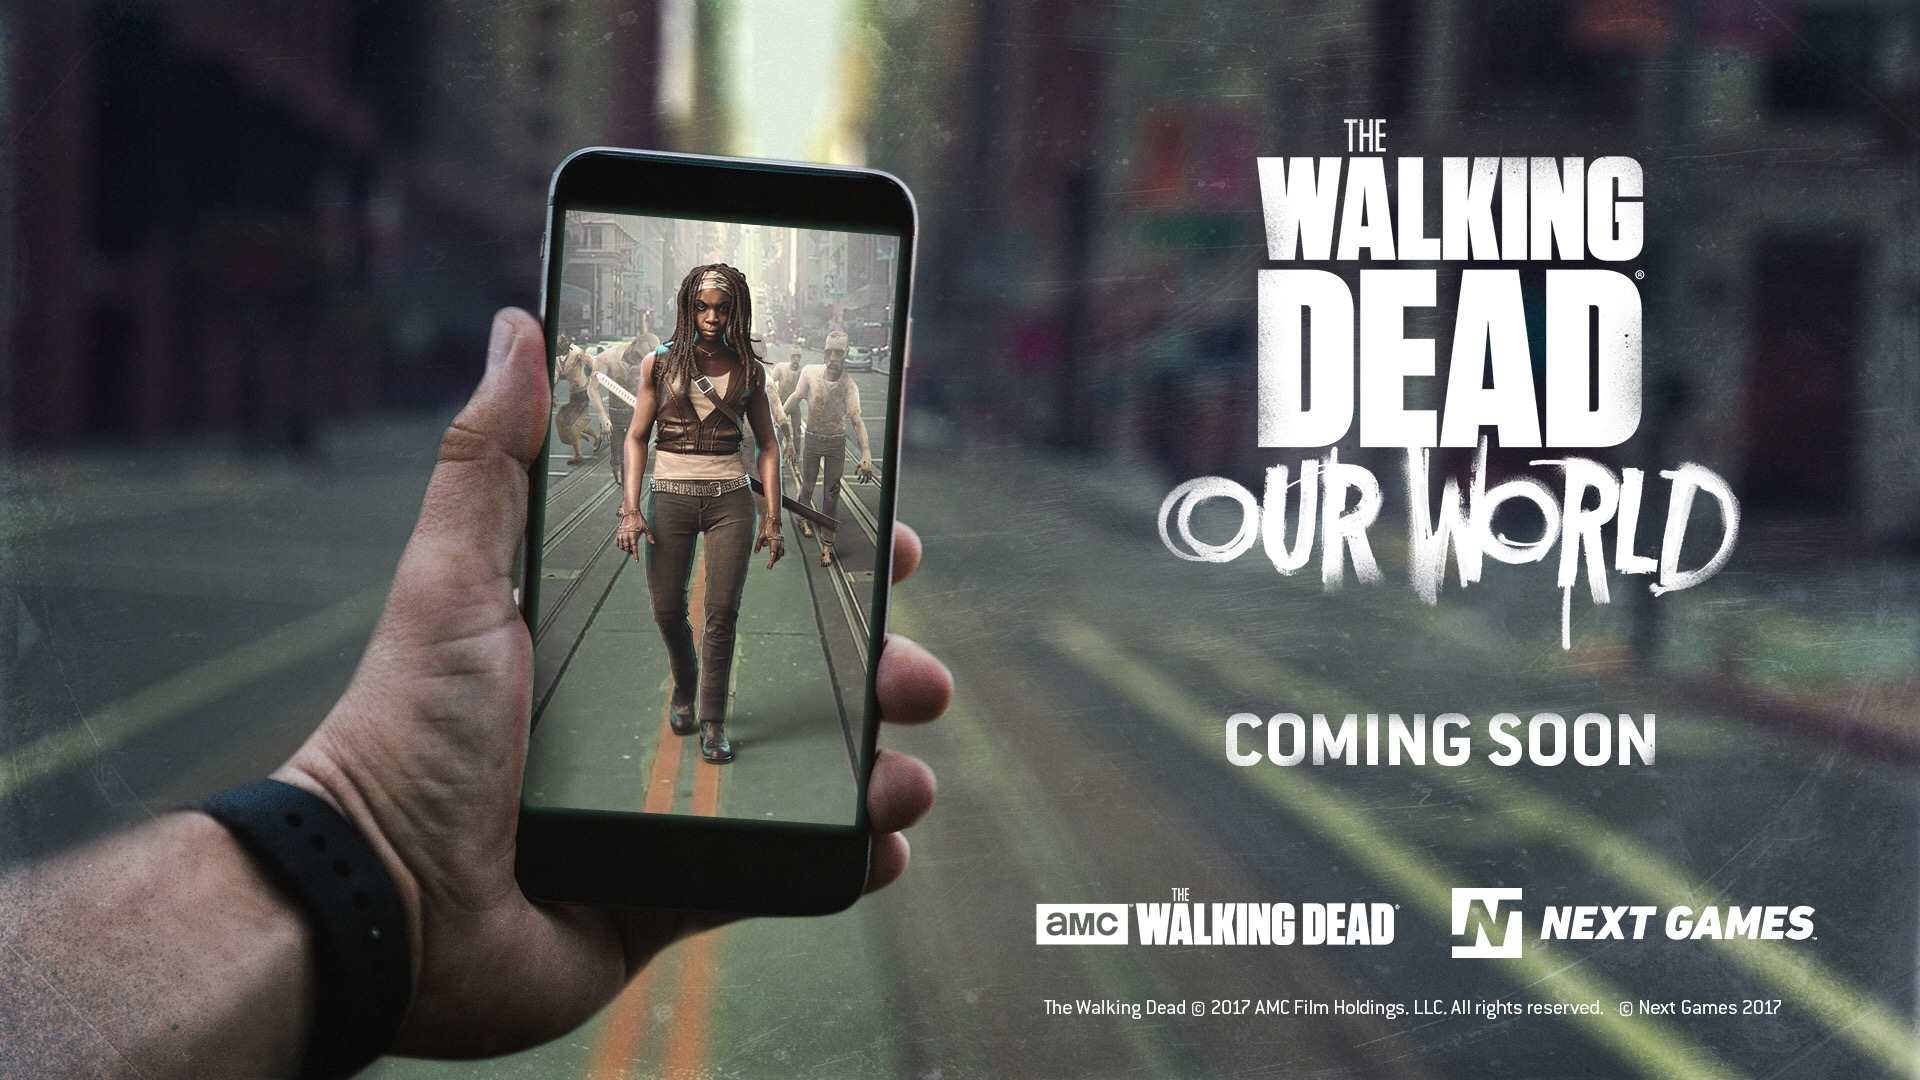 The Walking Dead is getting a Pokémon Go-style AR game - The